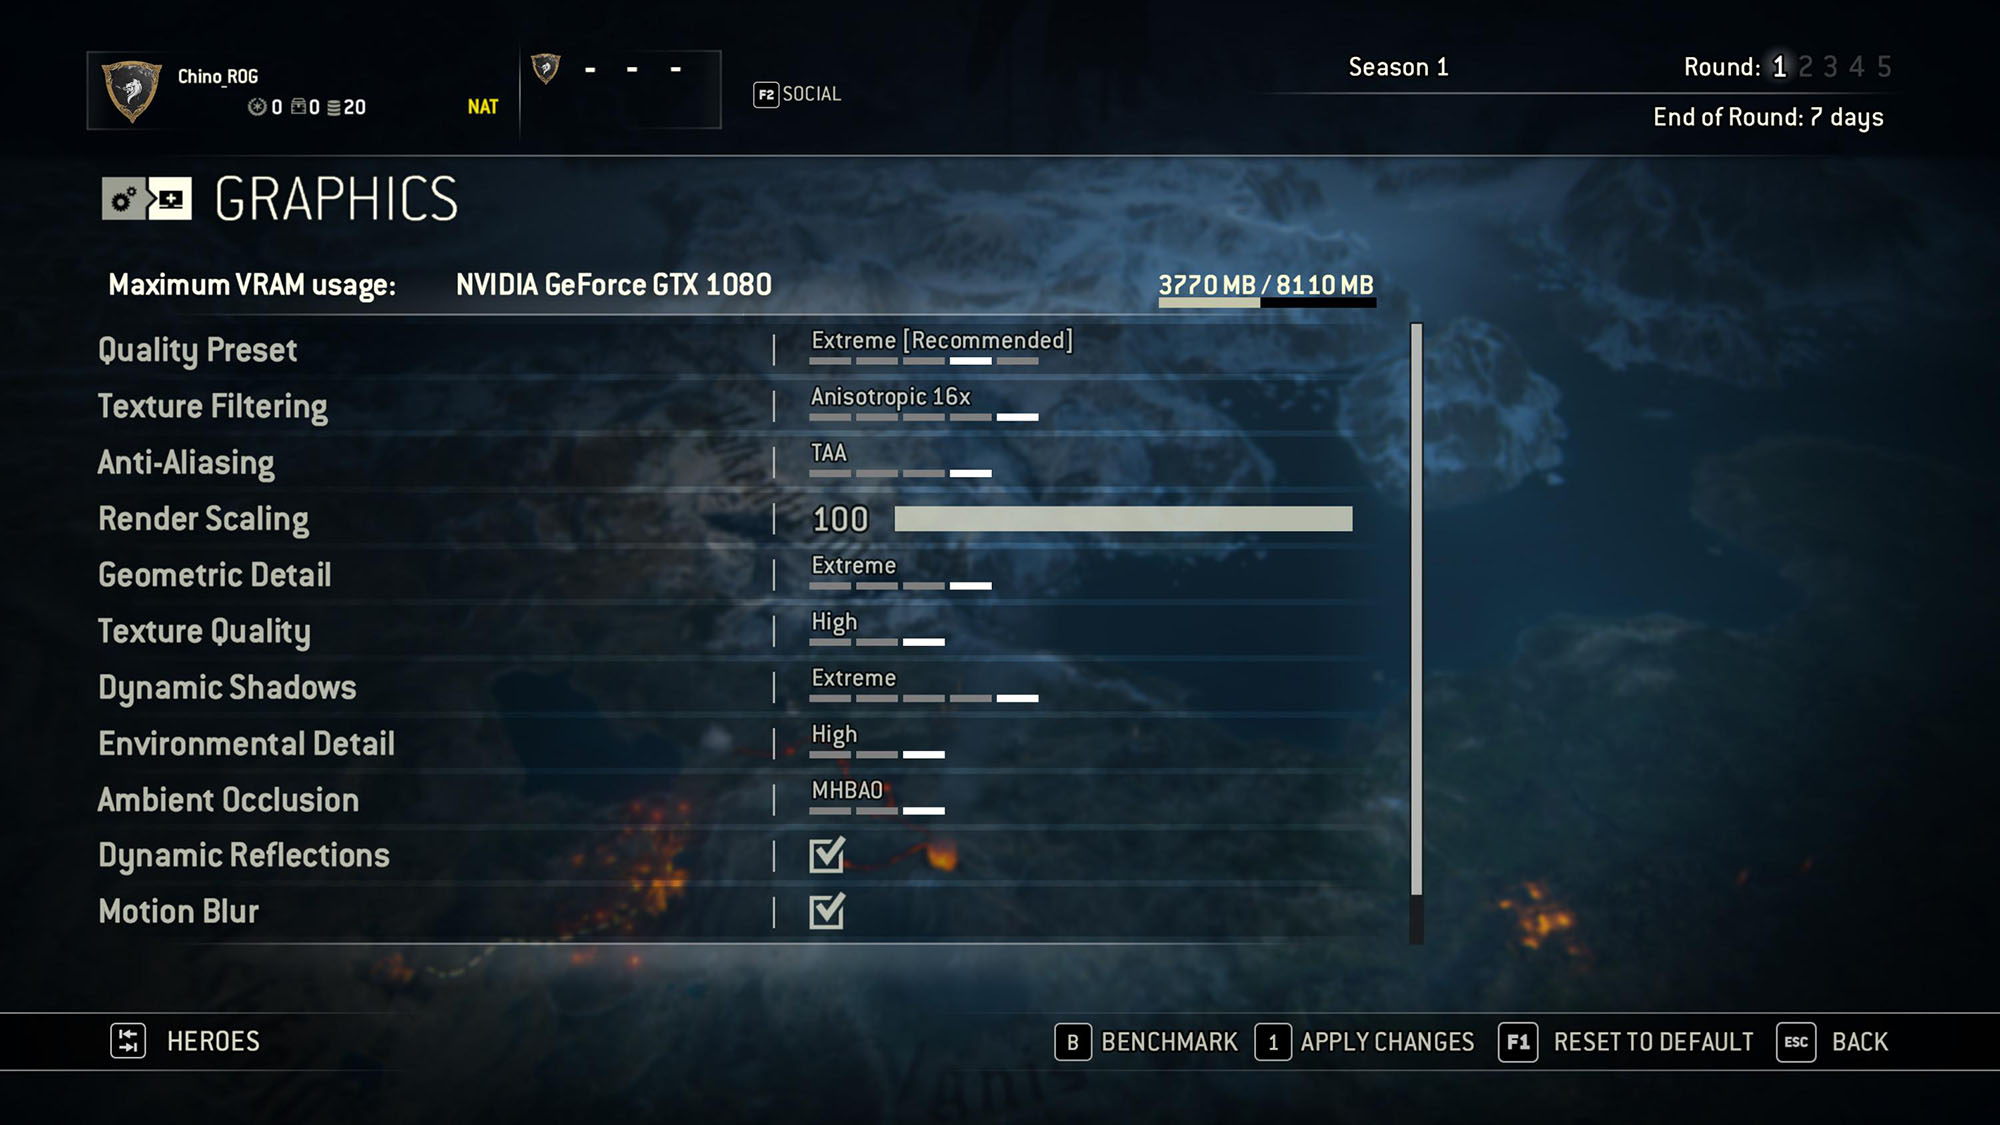 FOR HONOR GRAPHICS PERFORMANCE GUIDE | ROG - Republic of Gamers